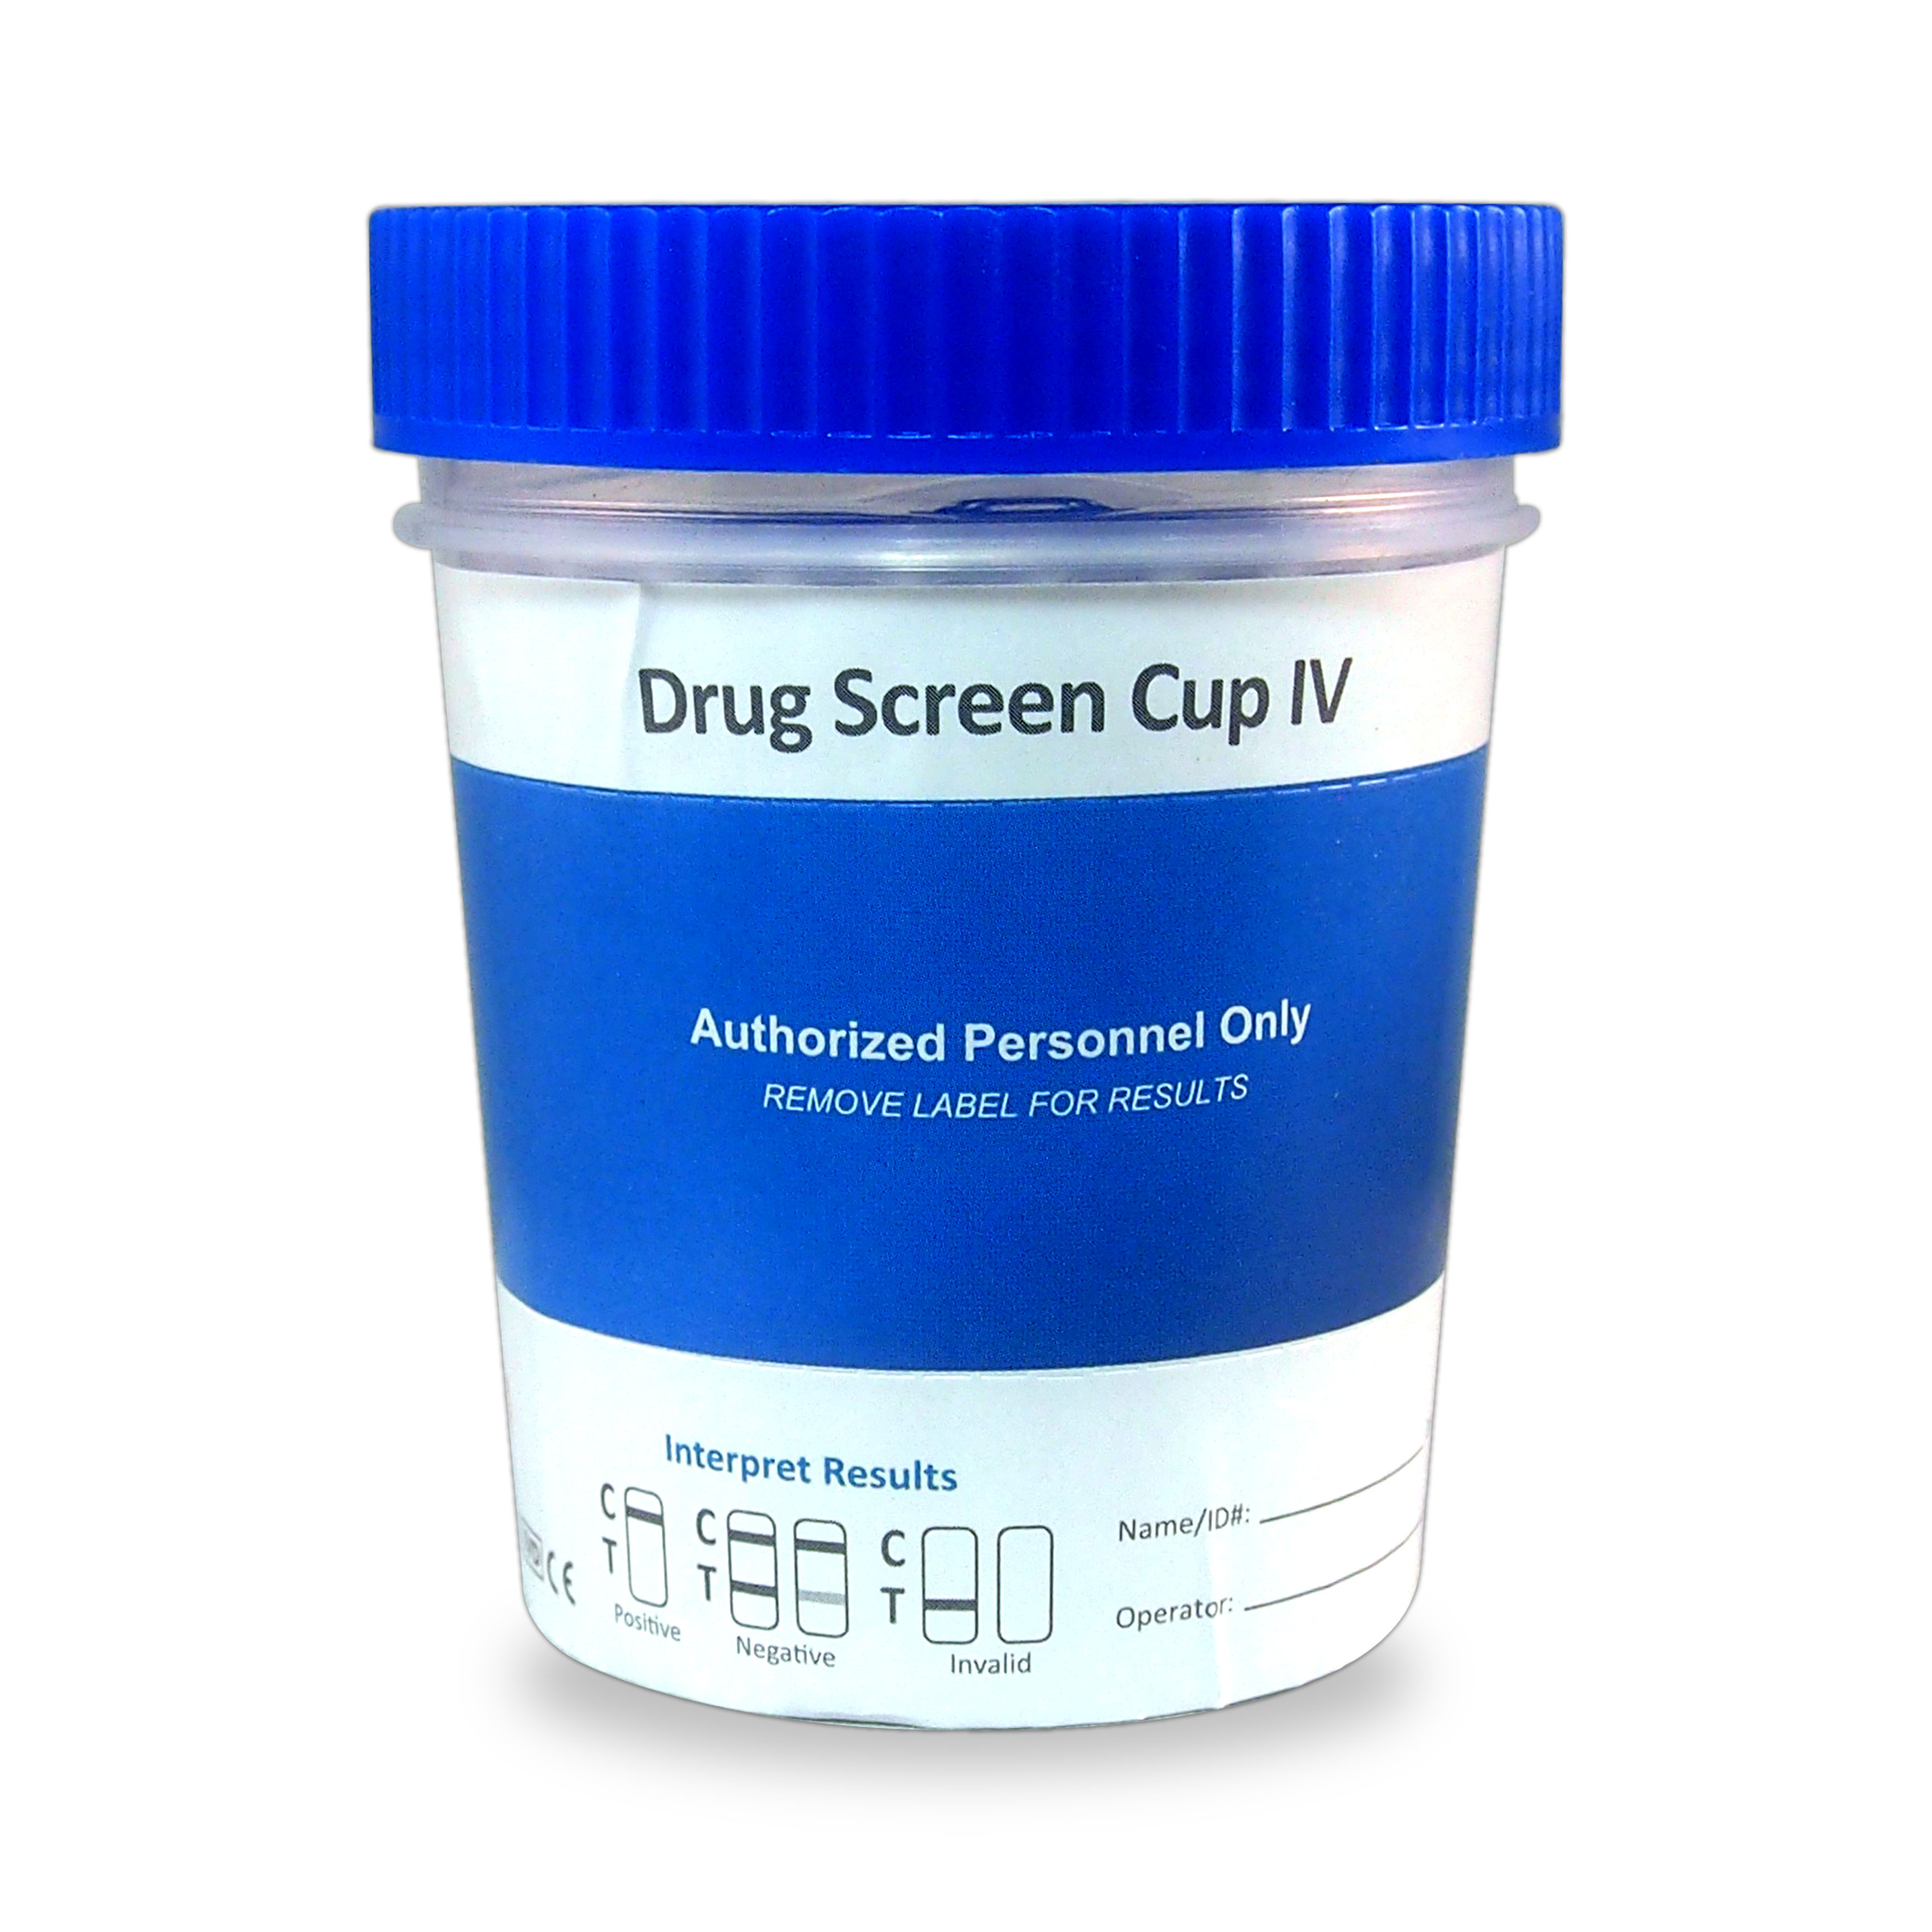 Drug Screen Cup IV